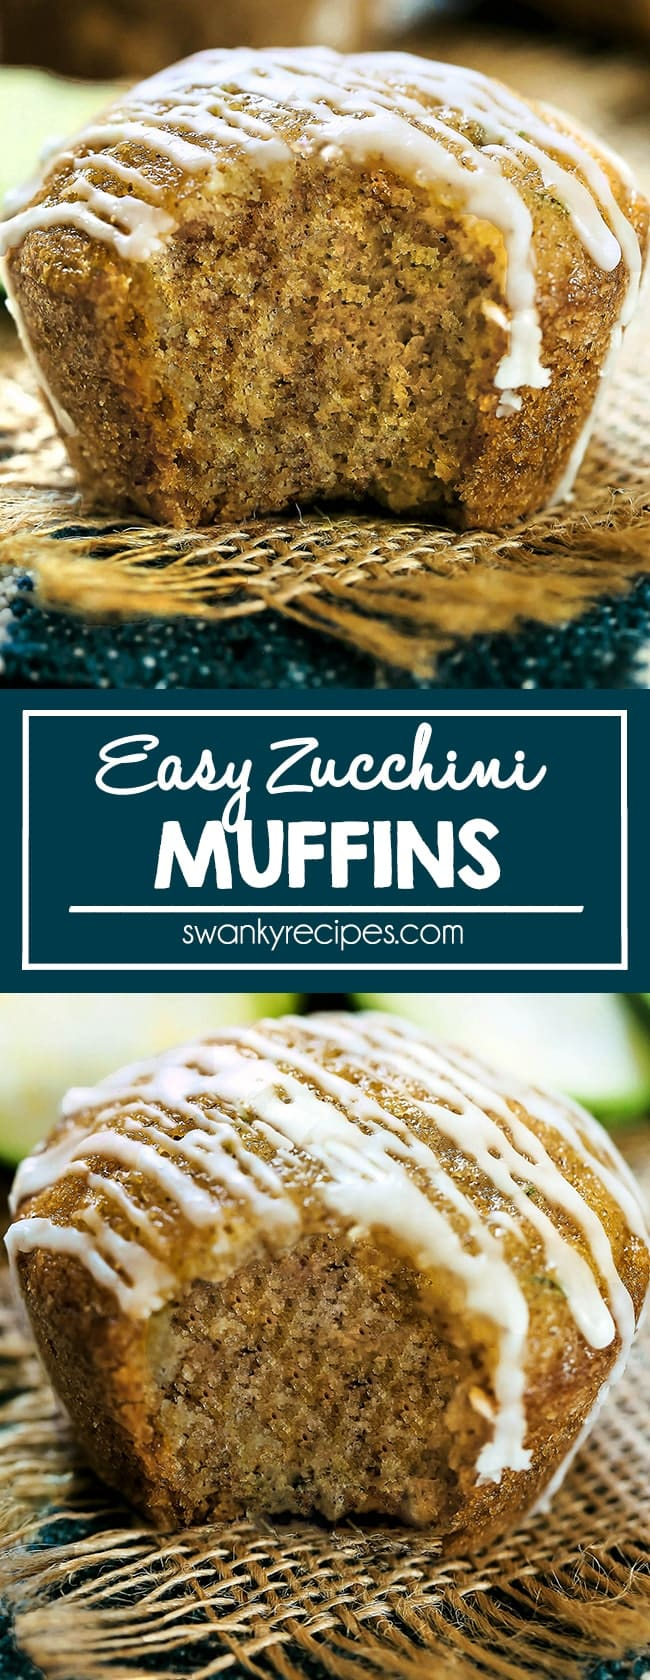 Zucchini Muffin cut in half with yellow crumbs and white icing glaze drizzled over the top. Served on a tabletop with a navy blue napkin and burlap.